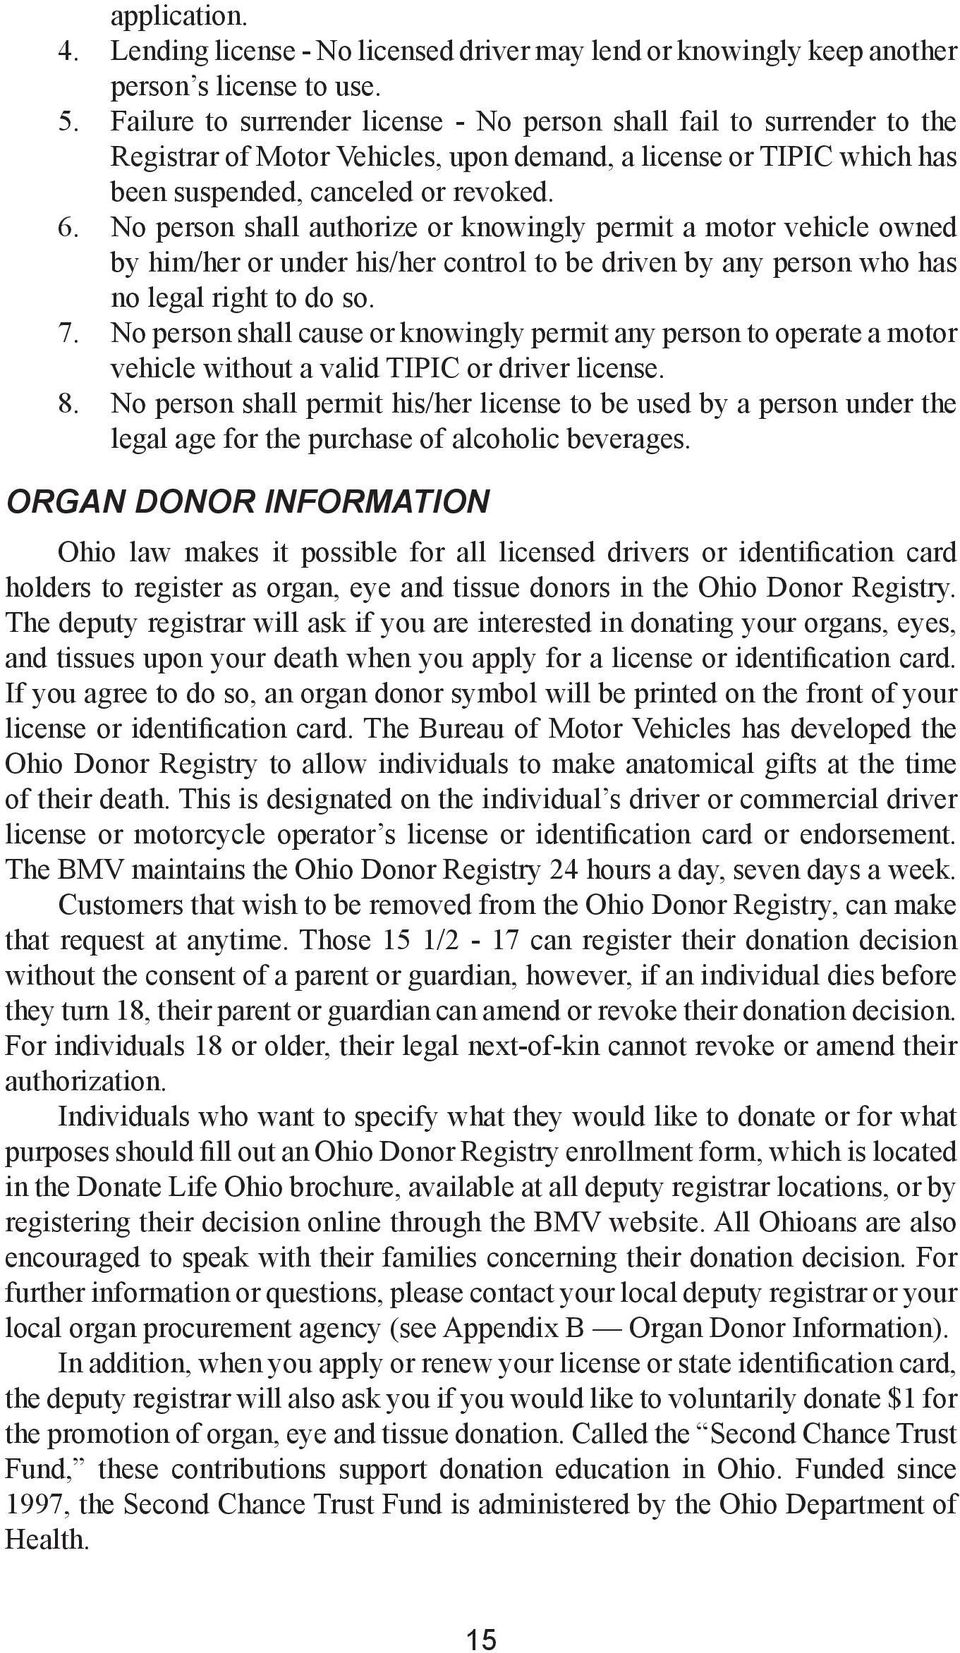 No person shall authorize or knowingly permit a motor vehicle owned by him/her or under his/her control to be driven by any person who has no legal right to do so. 7.